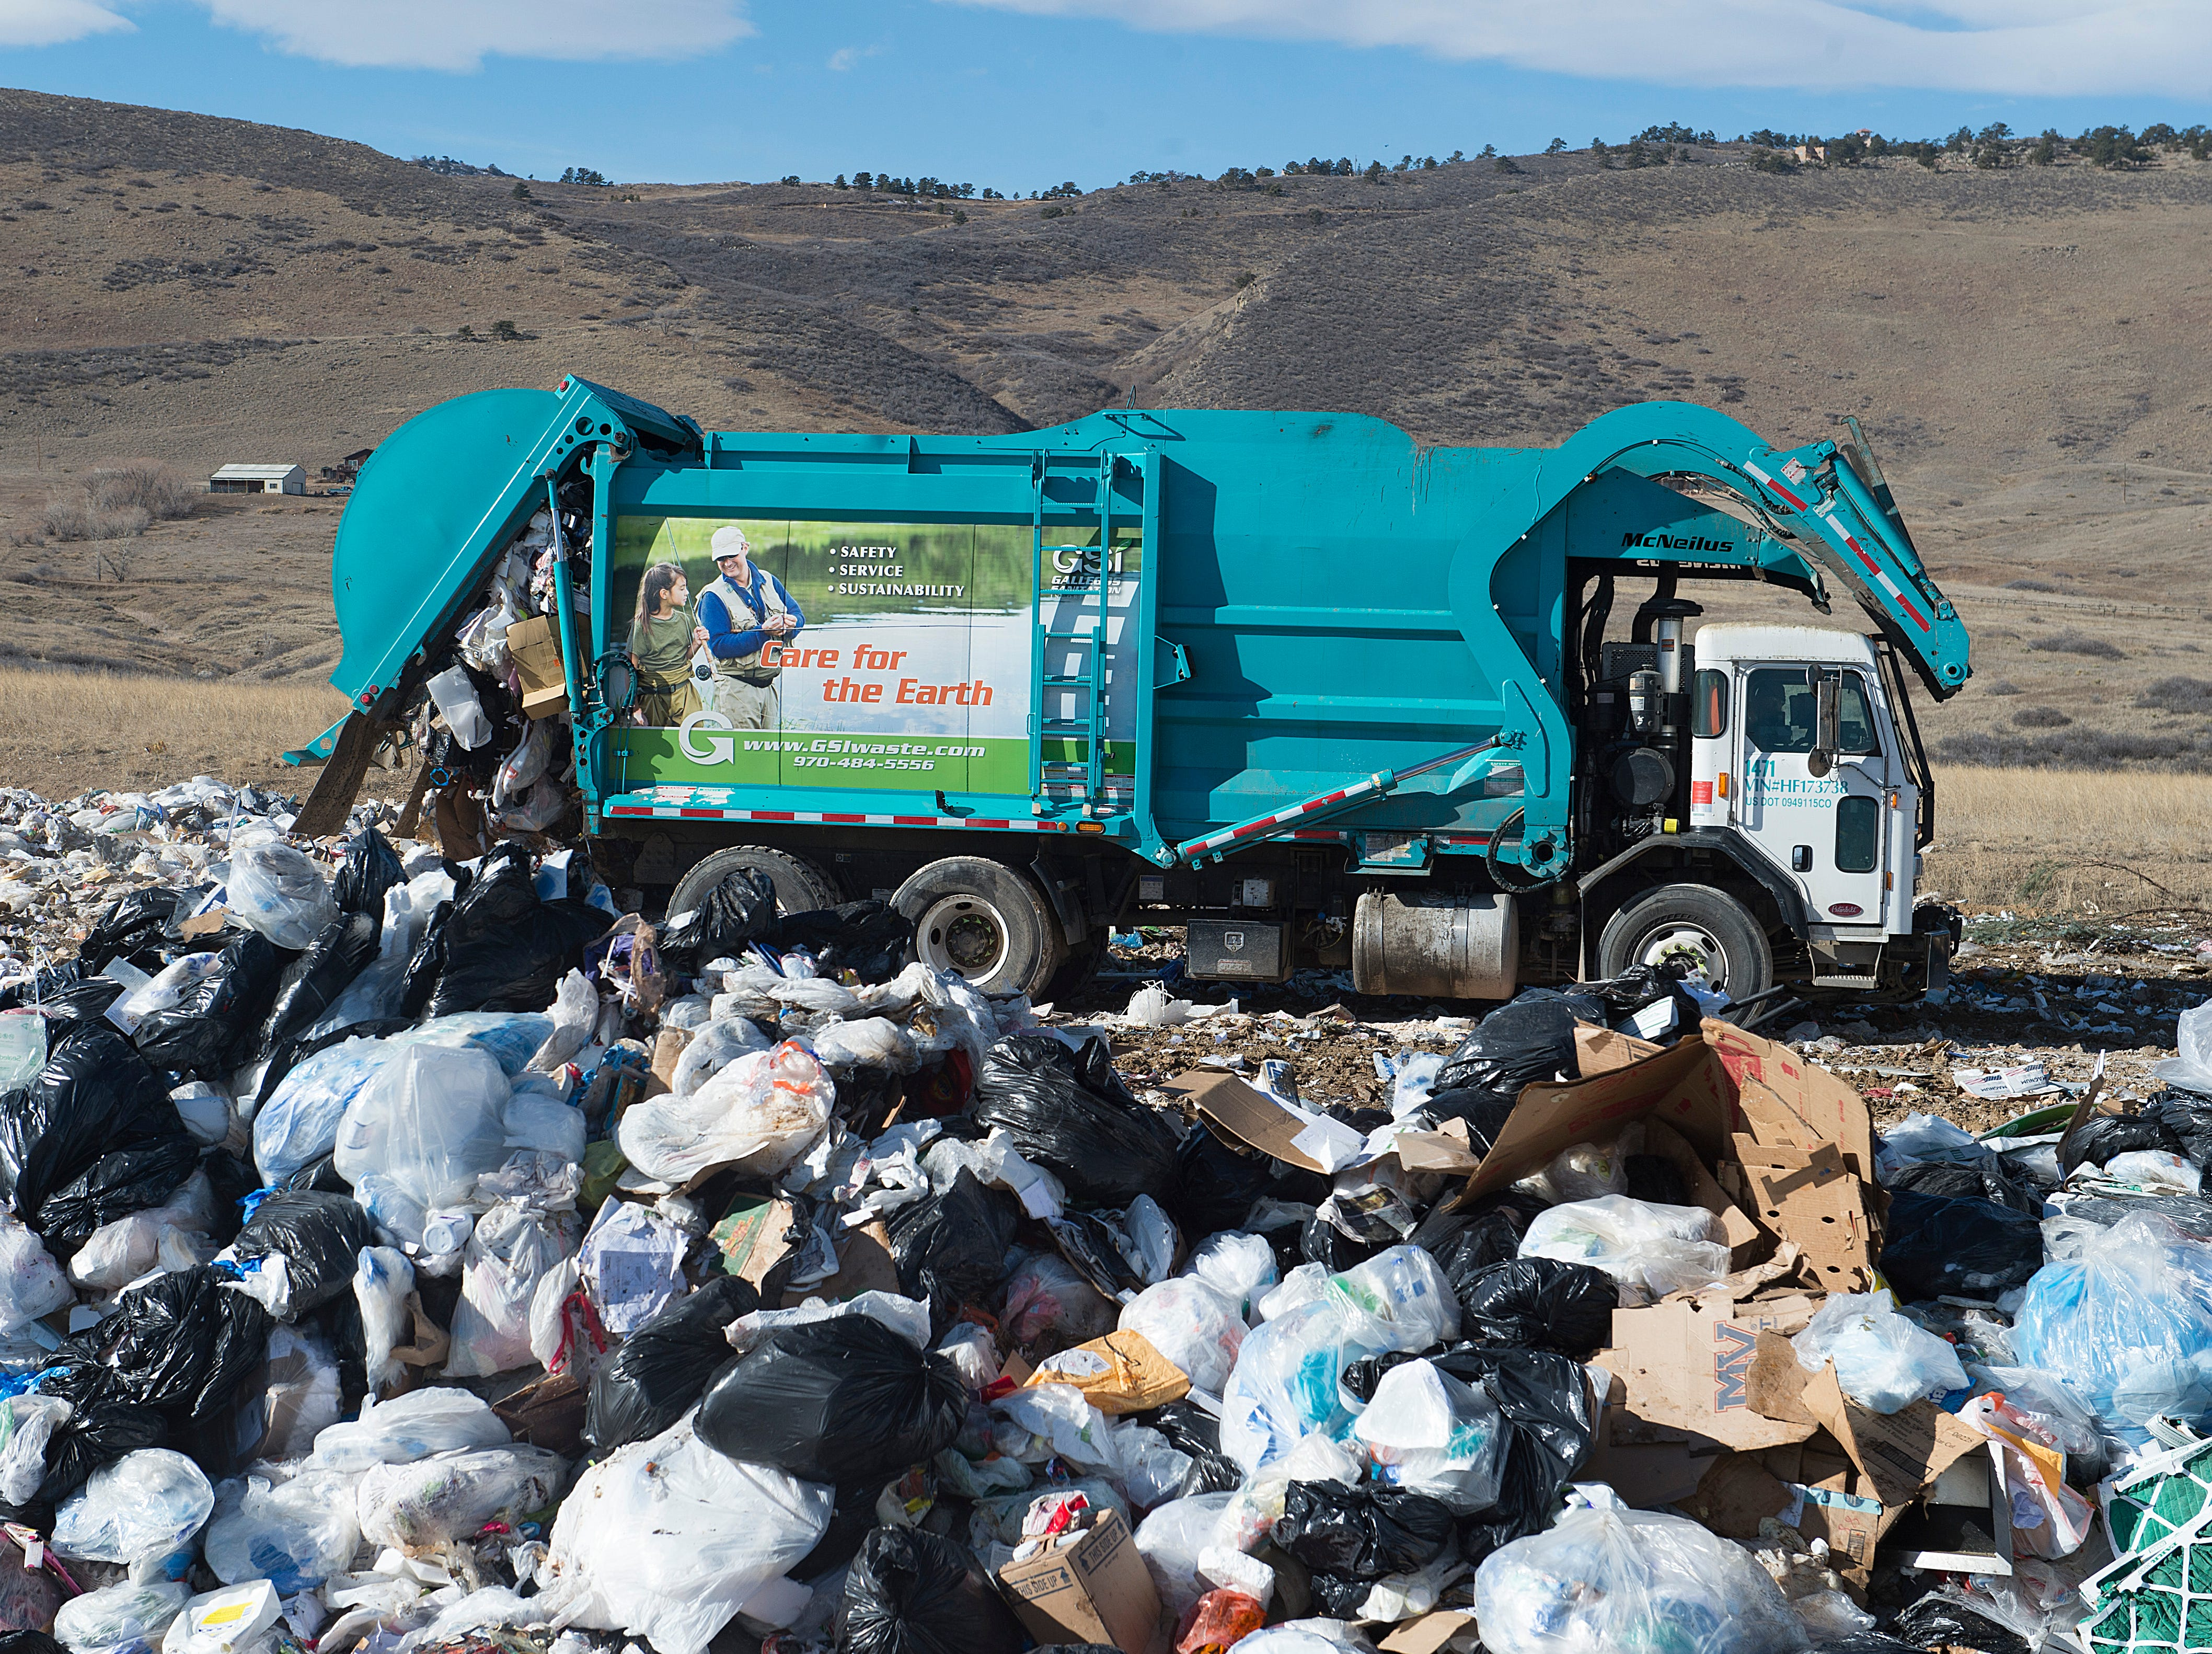 A commercial waste truck dumps a load at the Larimer County Landfill on Tuesday, January 15, 2019.